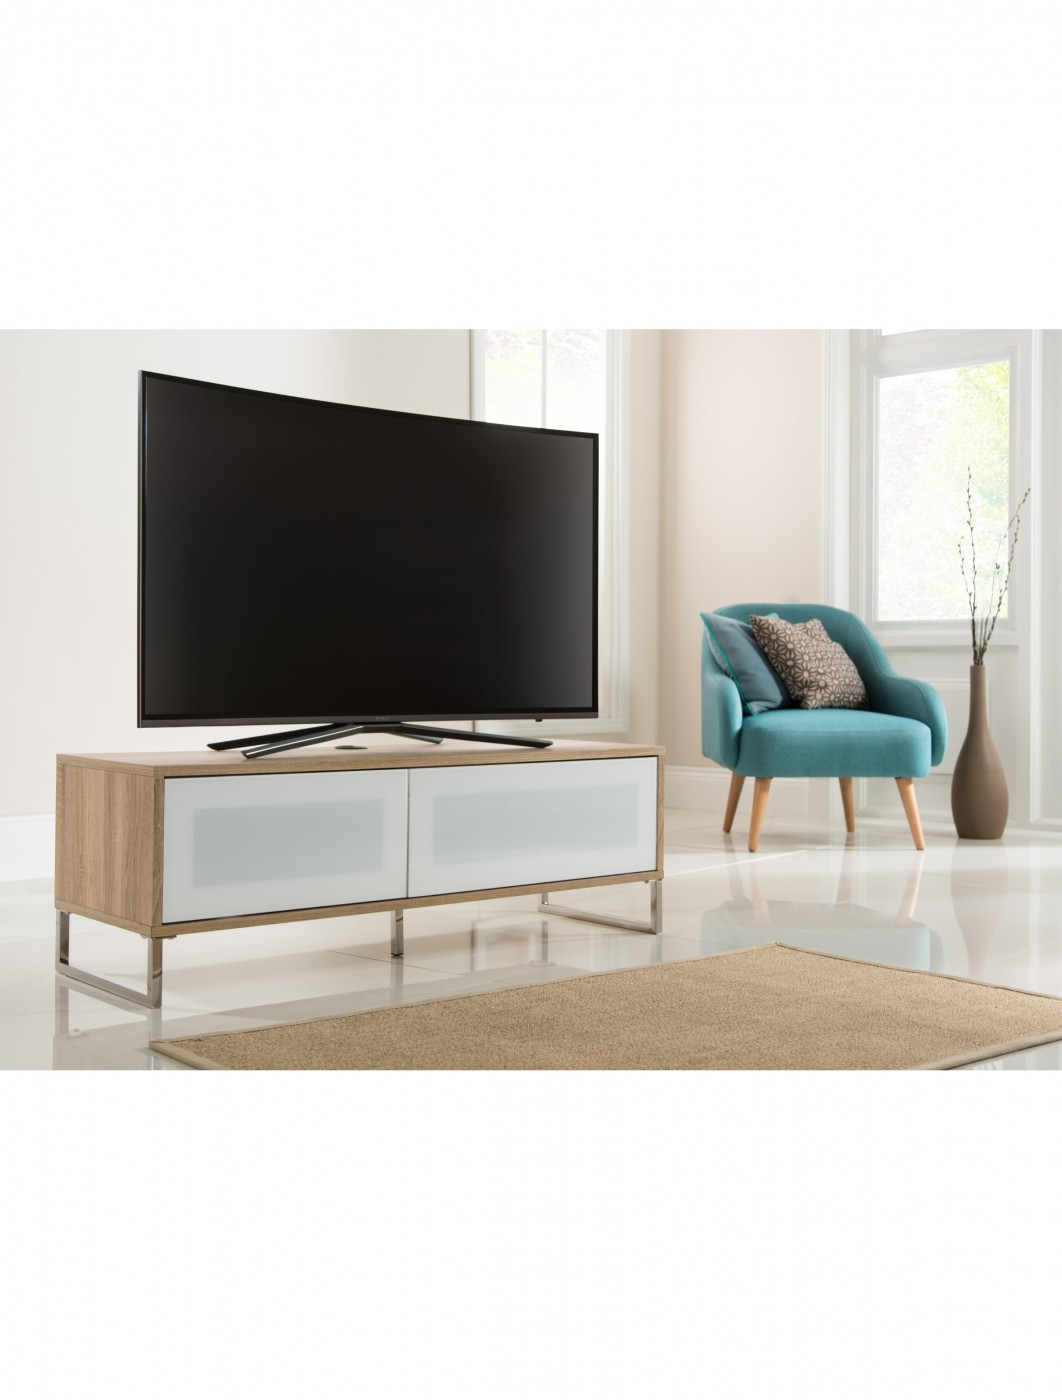 Alphason Helium 1200mm TV Stand ADHE1200-LO in Sawn Oak & White